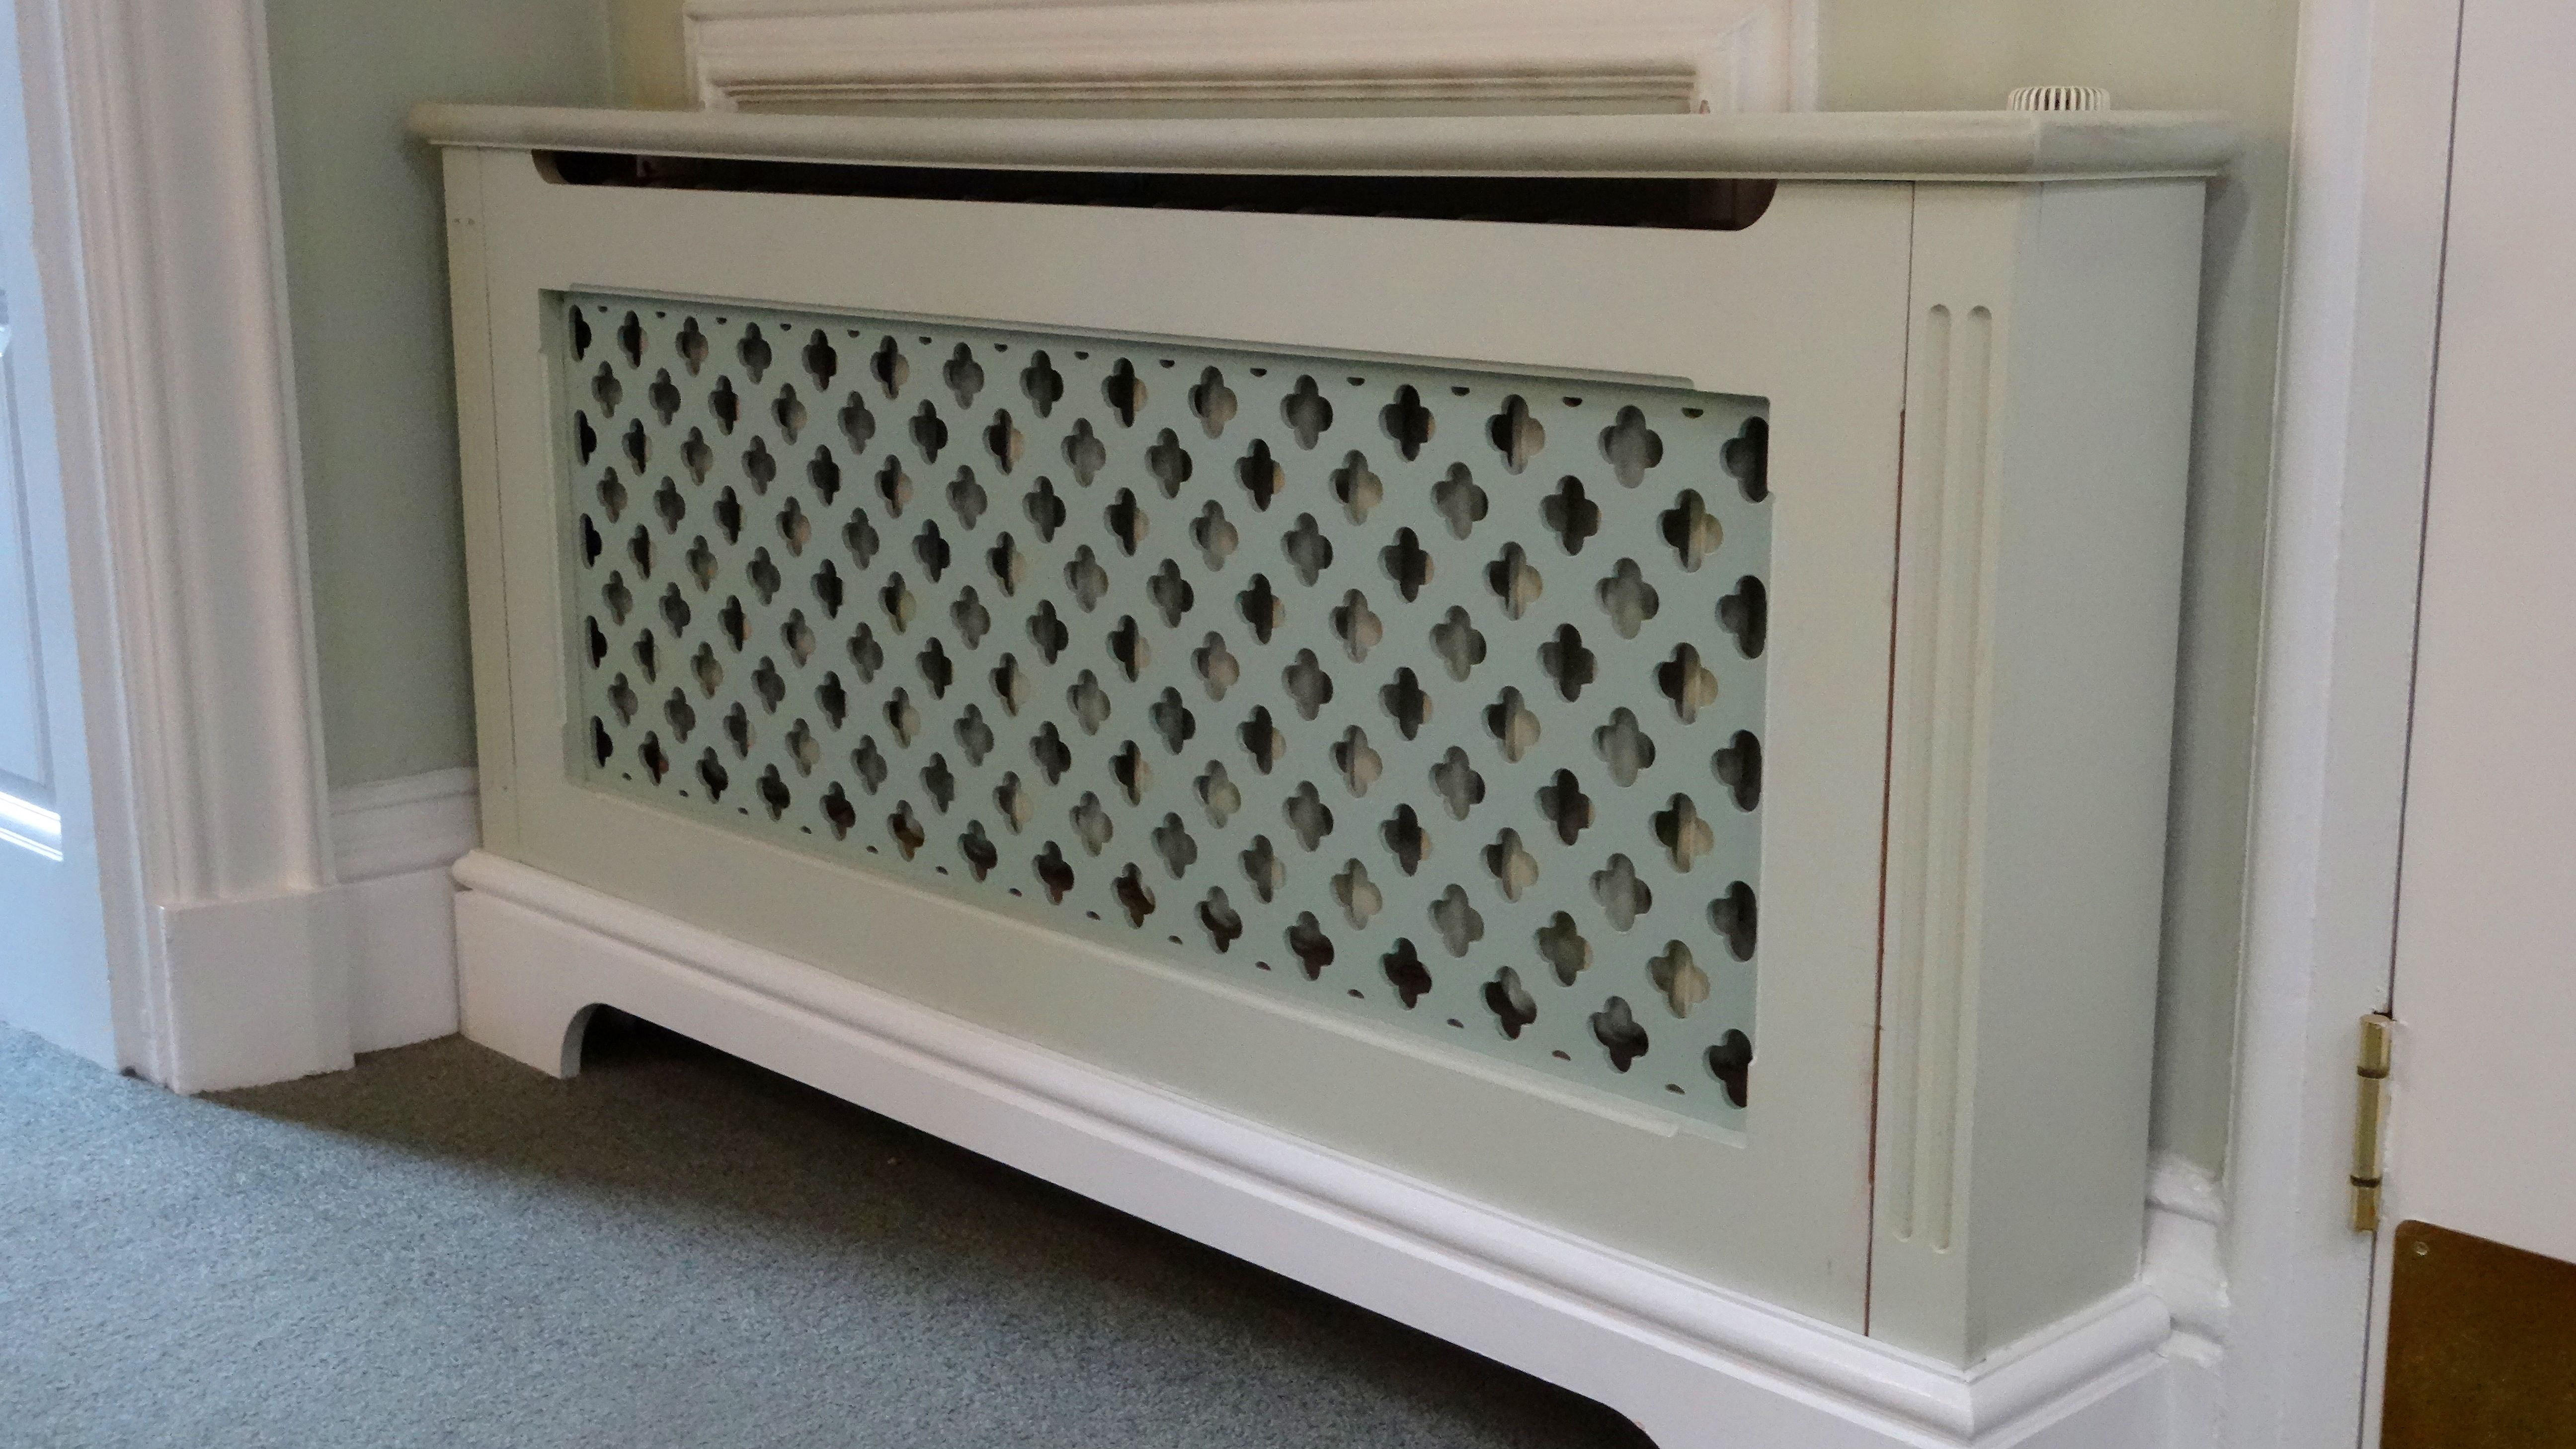 Do Radiator Covers Save Energy Or Waste It